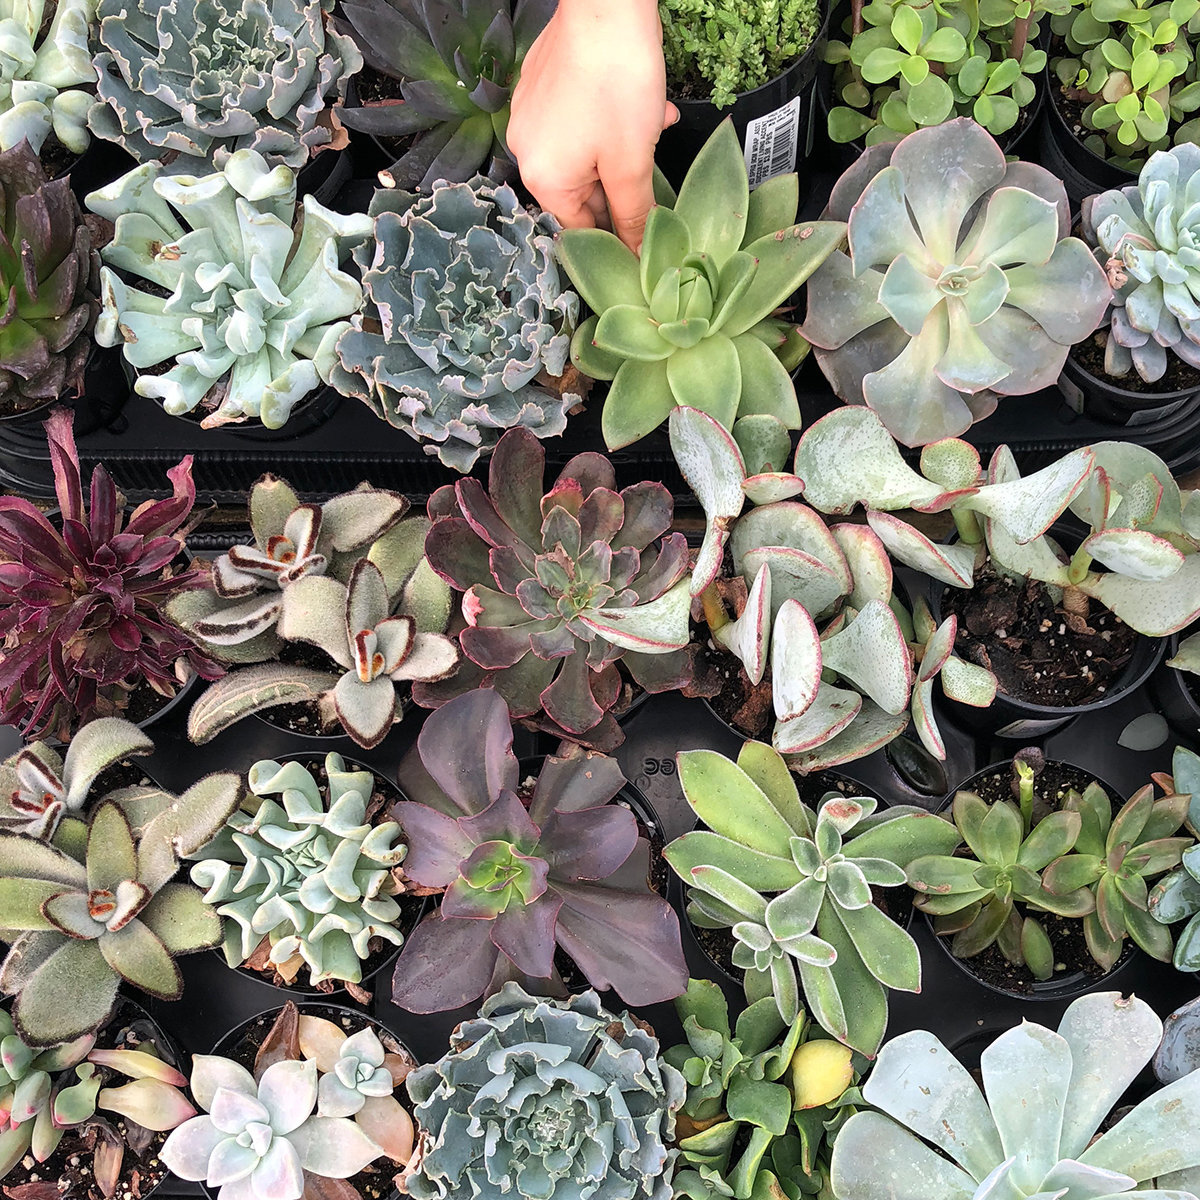 Group of colorful succulent plants gathered together